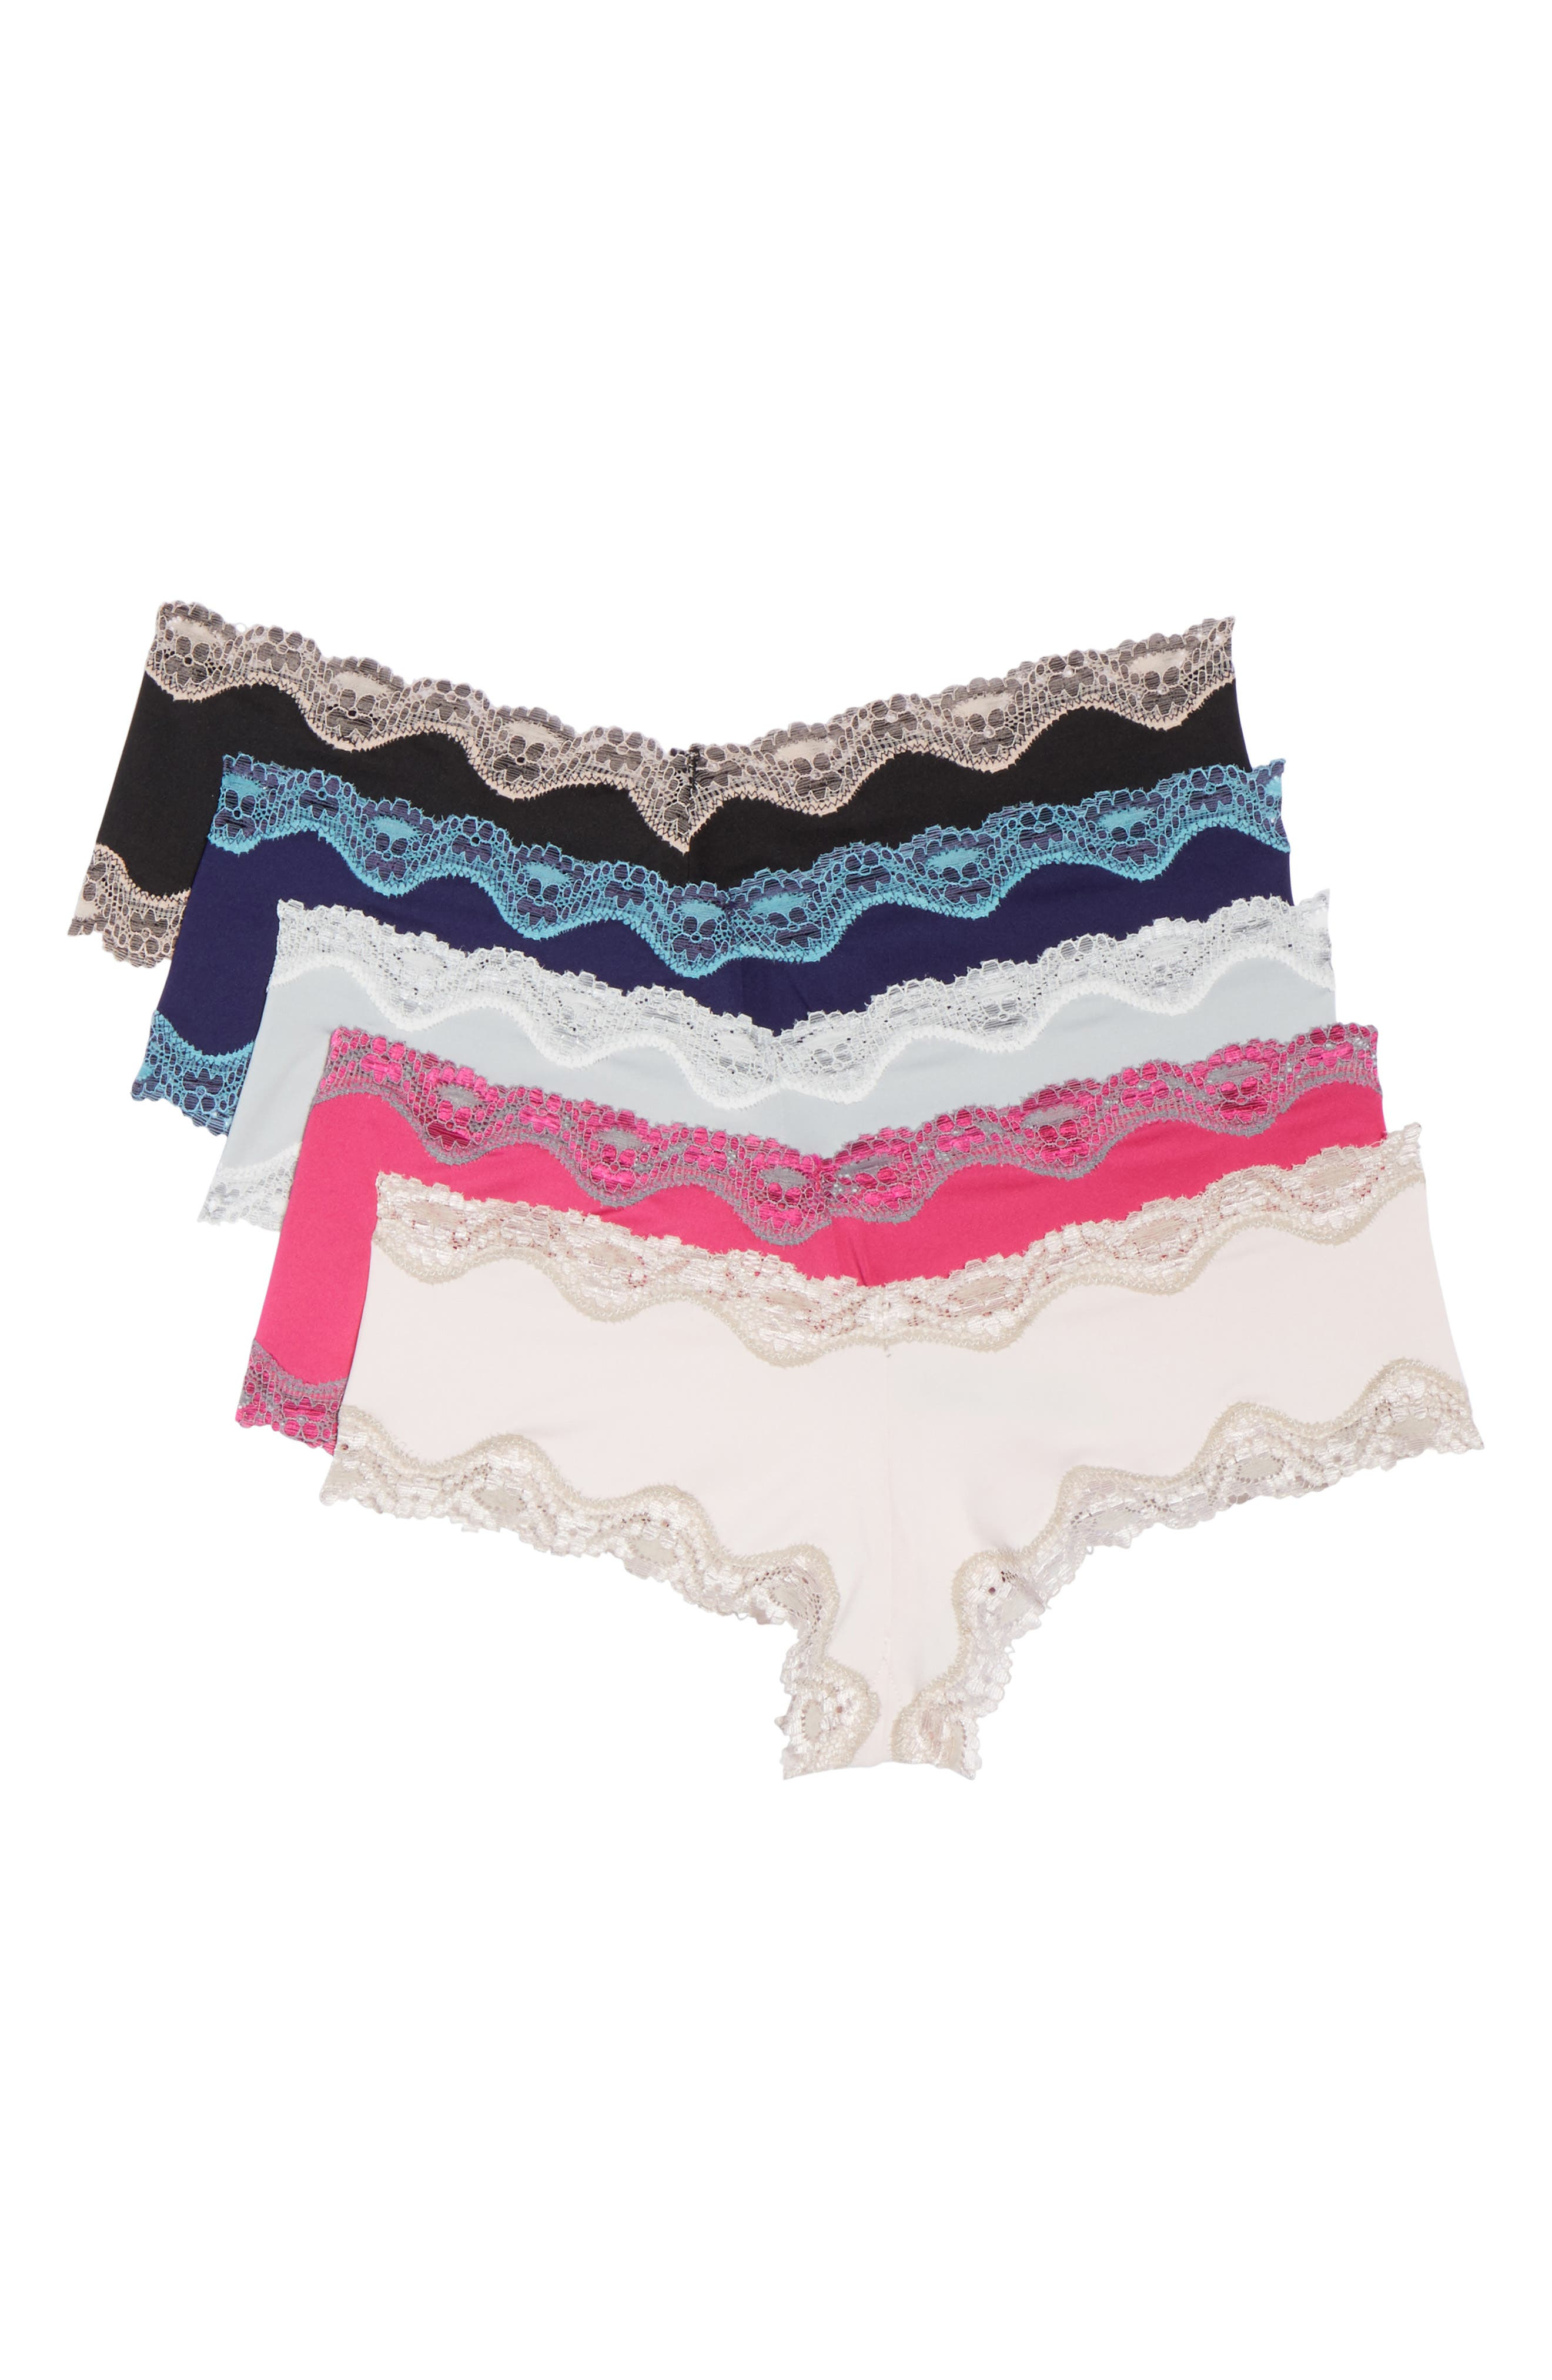 Honeydew 5-Pack Lace Trim Hipster Panties